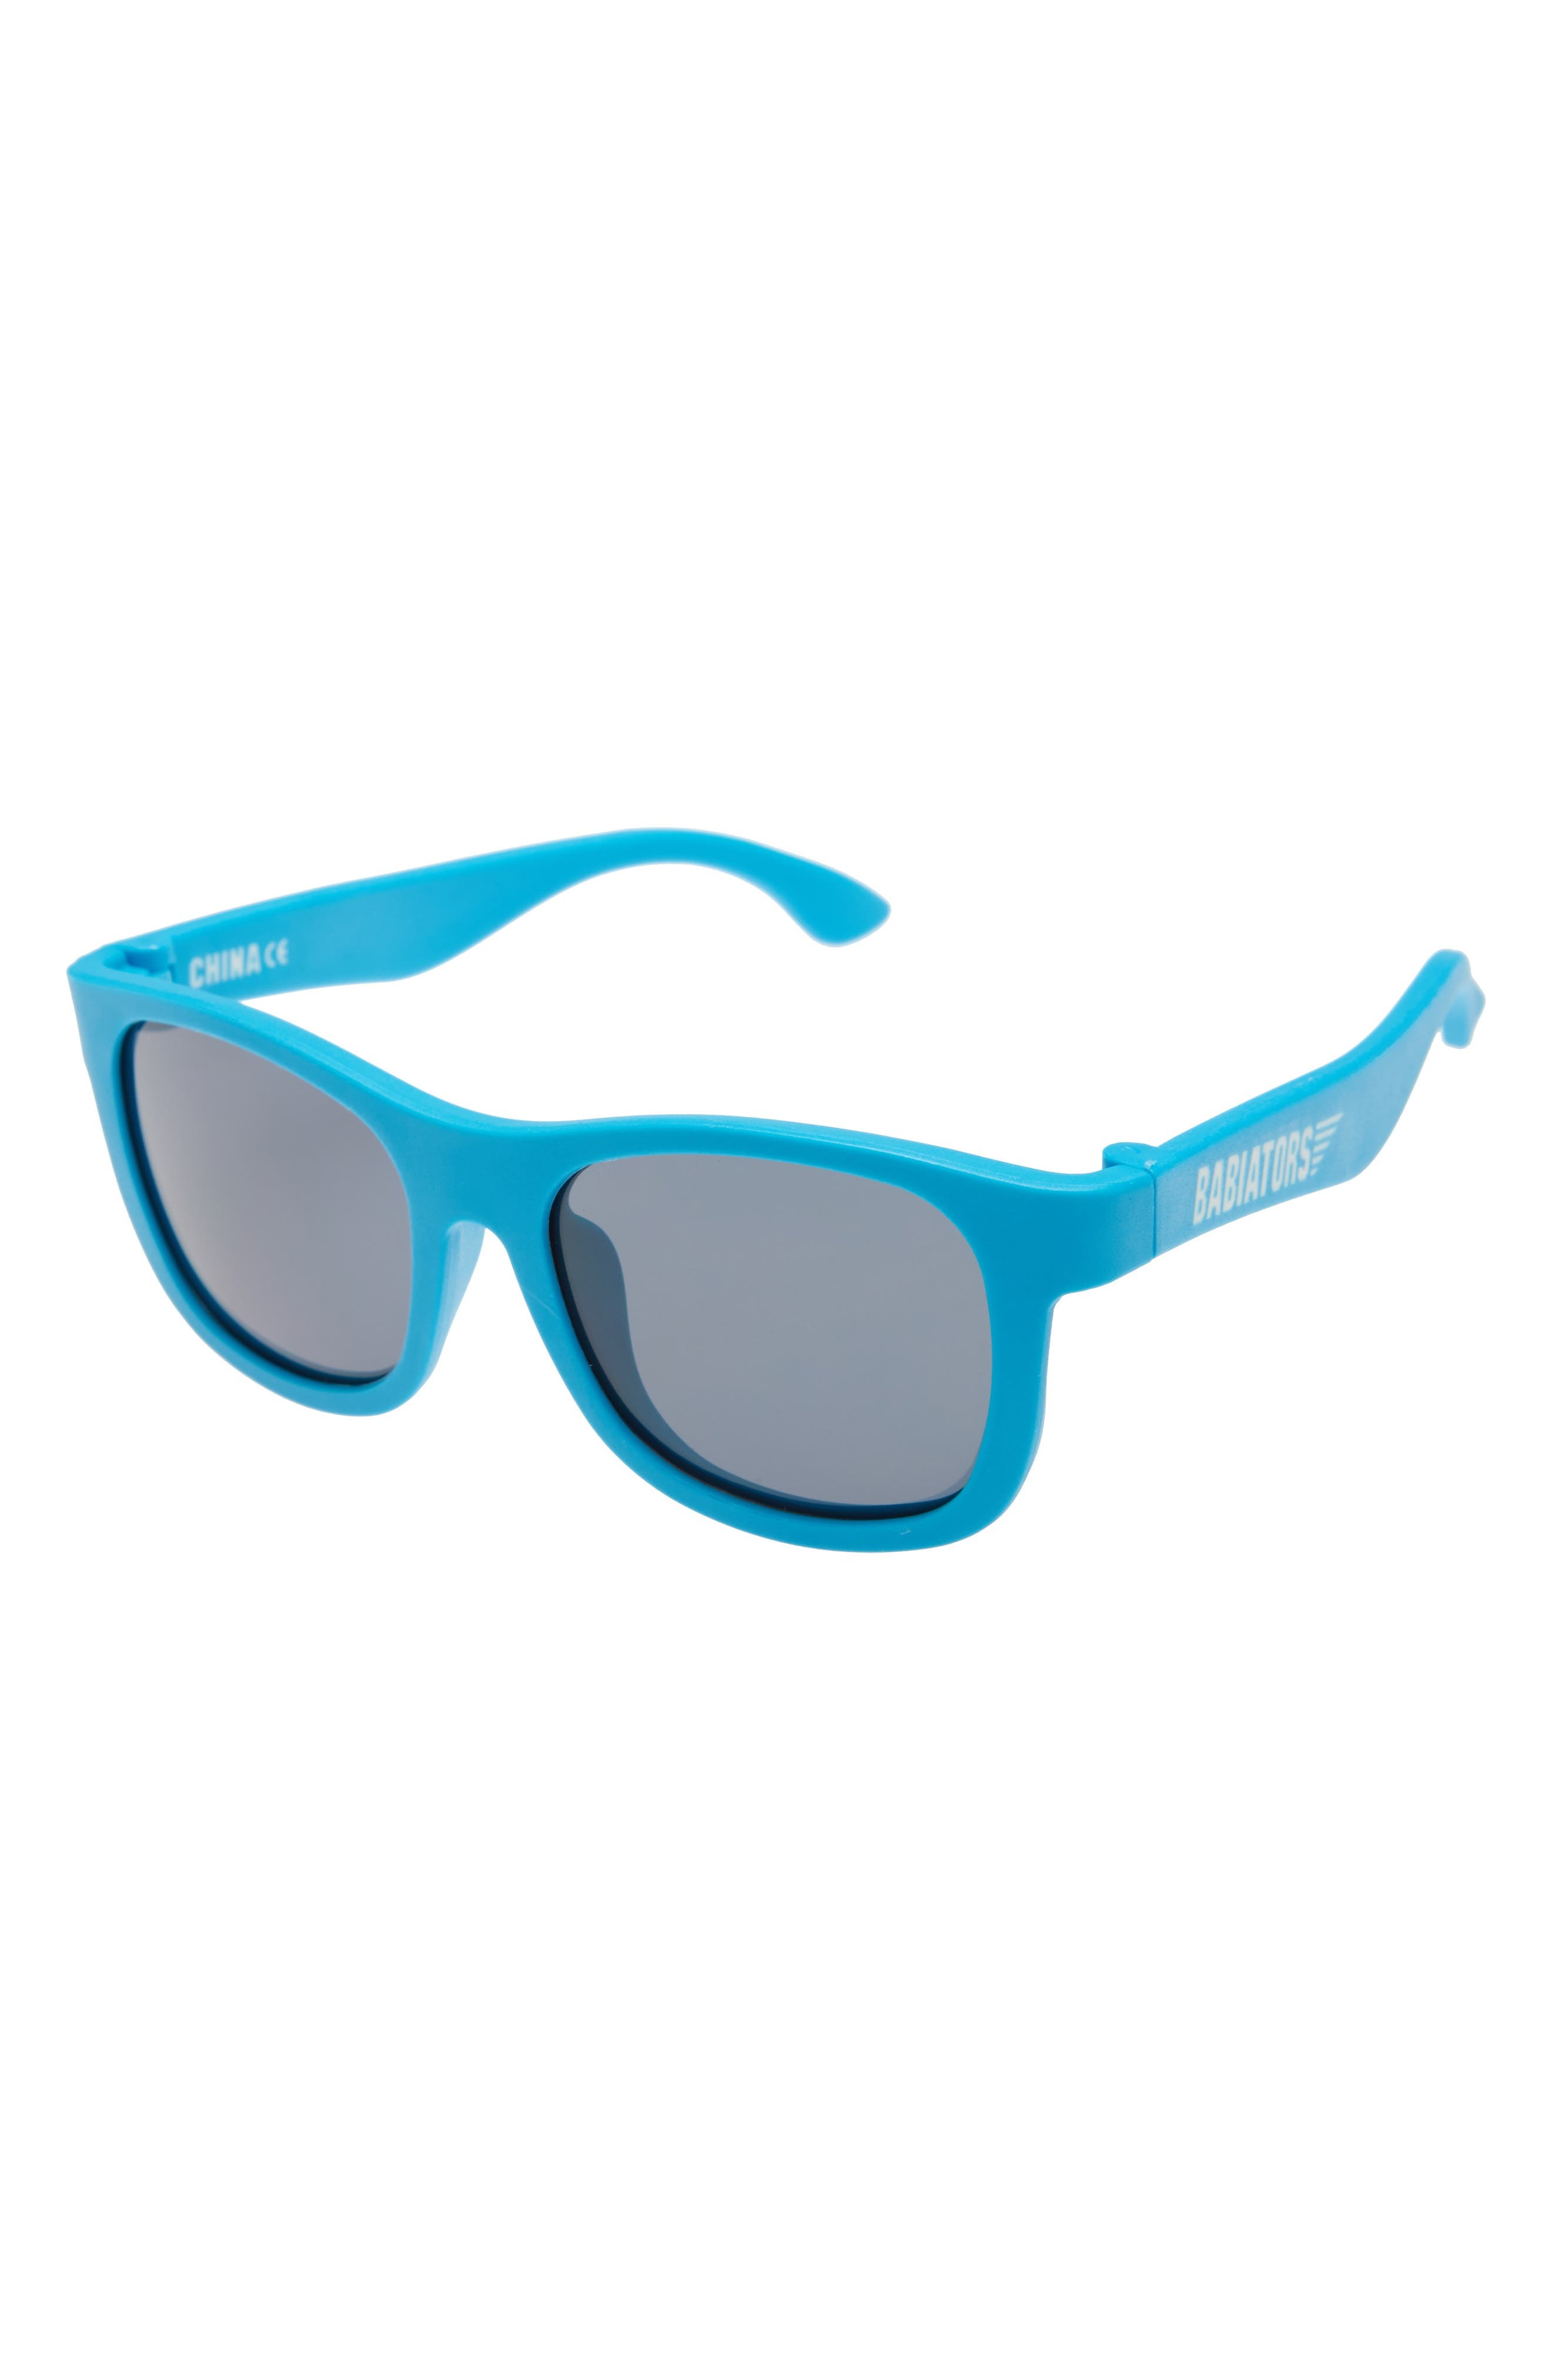 Main Image - Babiators Original Navigators Sunglasses (Baby & Little Kid)